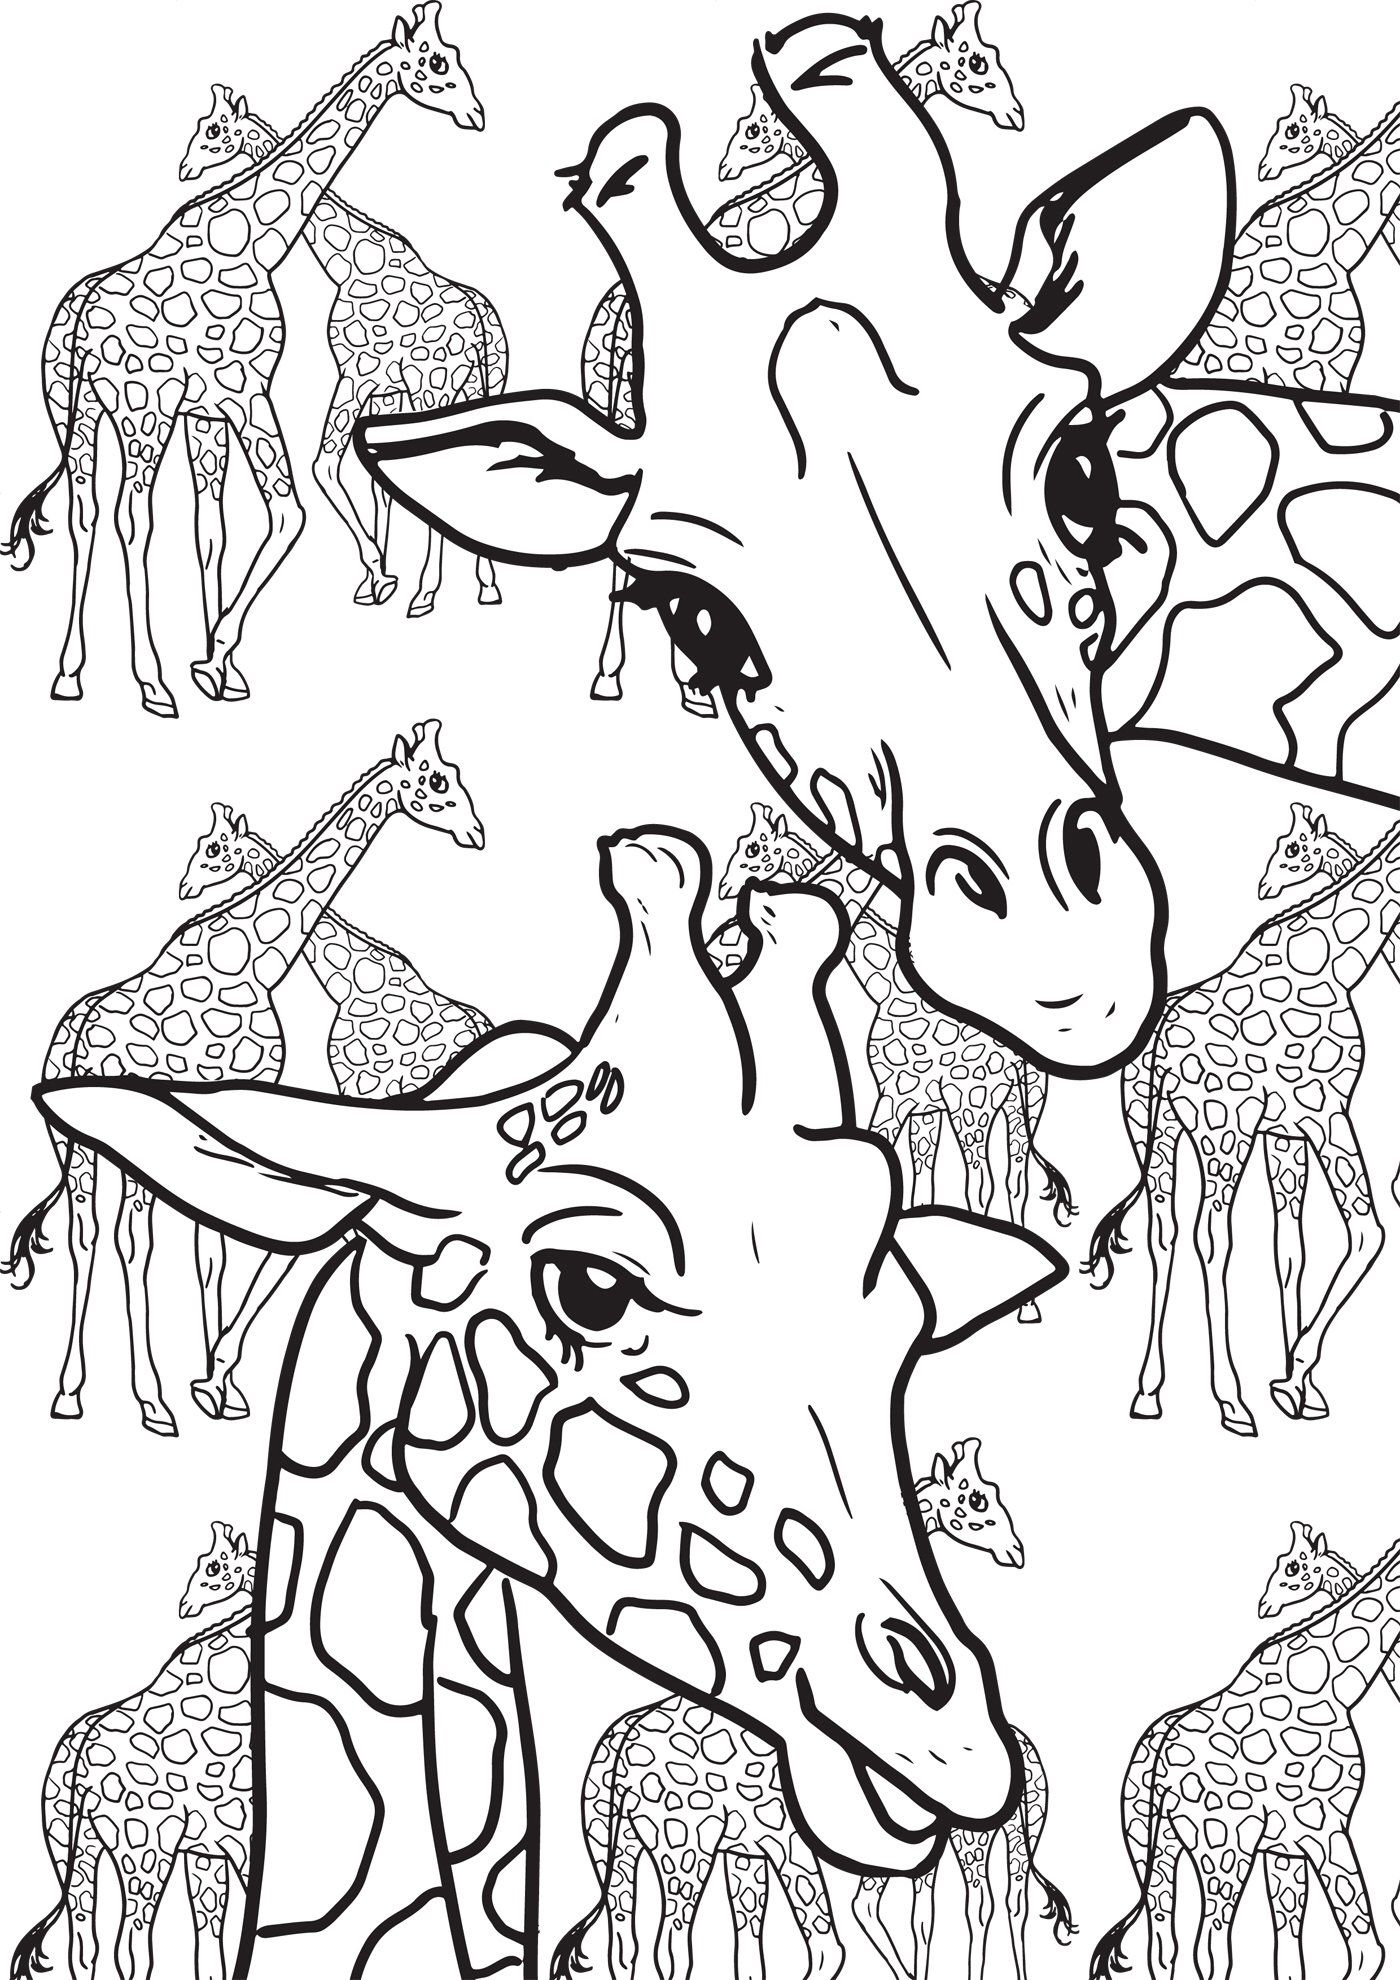 Doodle | Animal coloring pages, Giraffe illustration